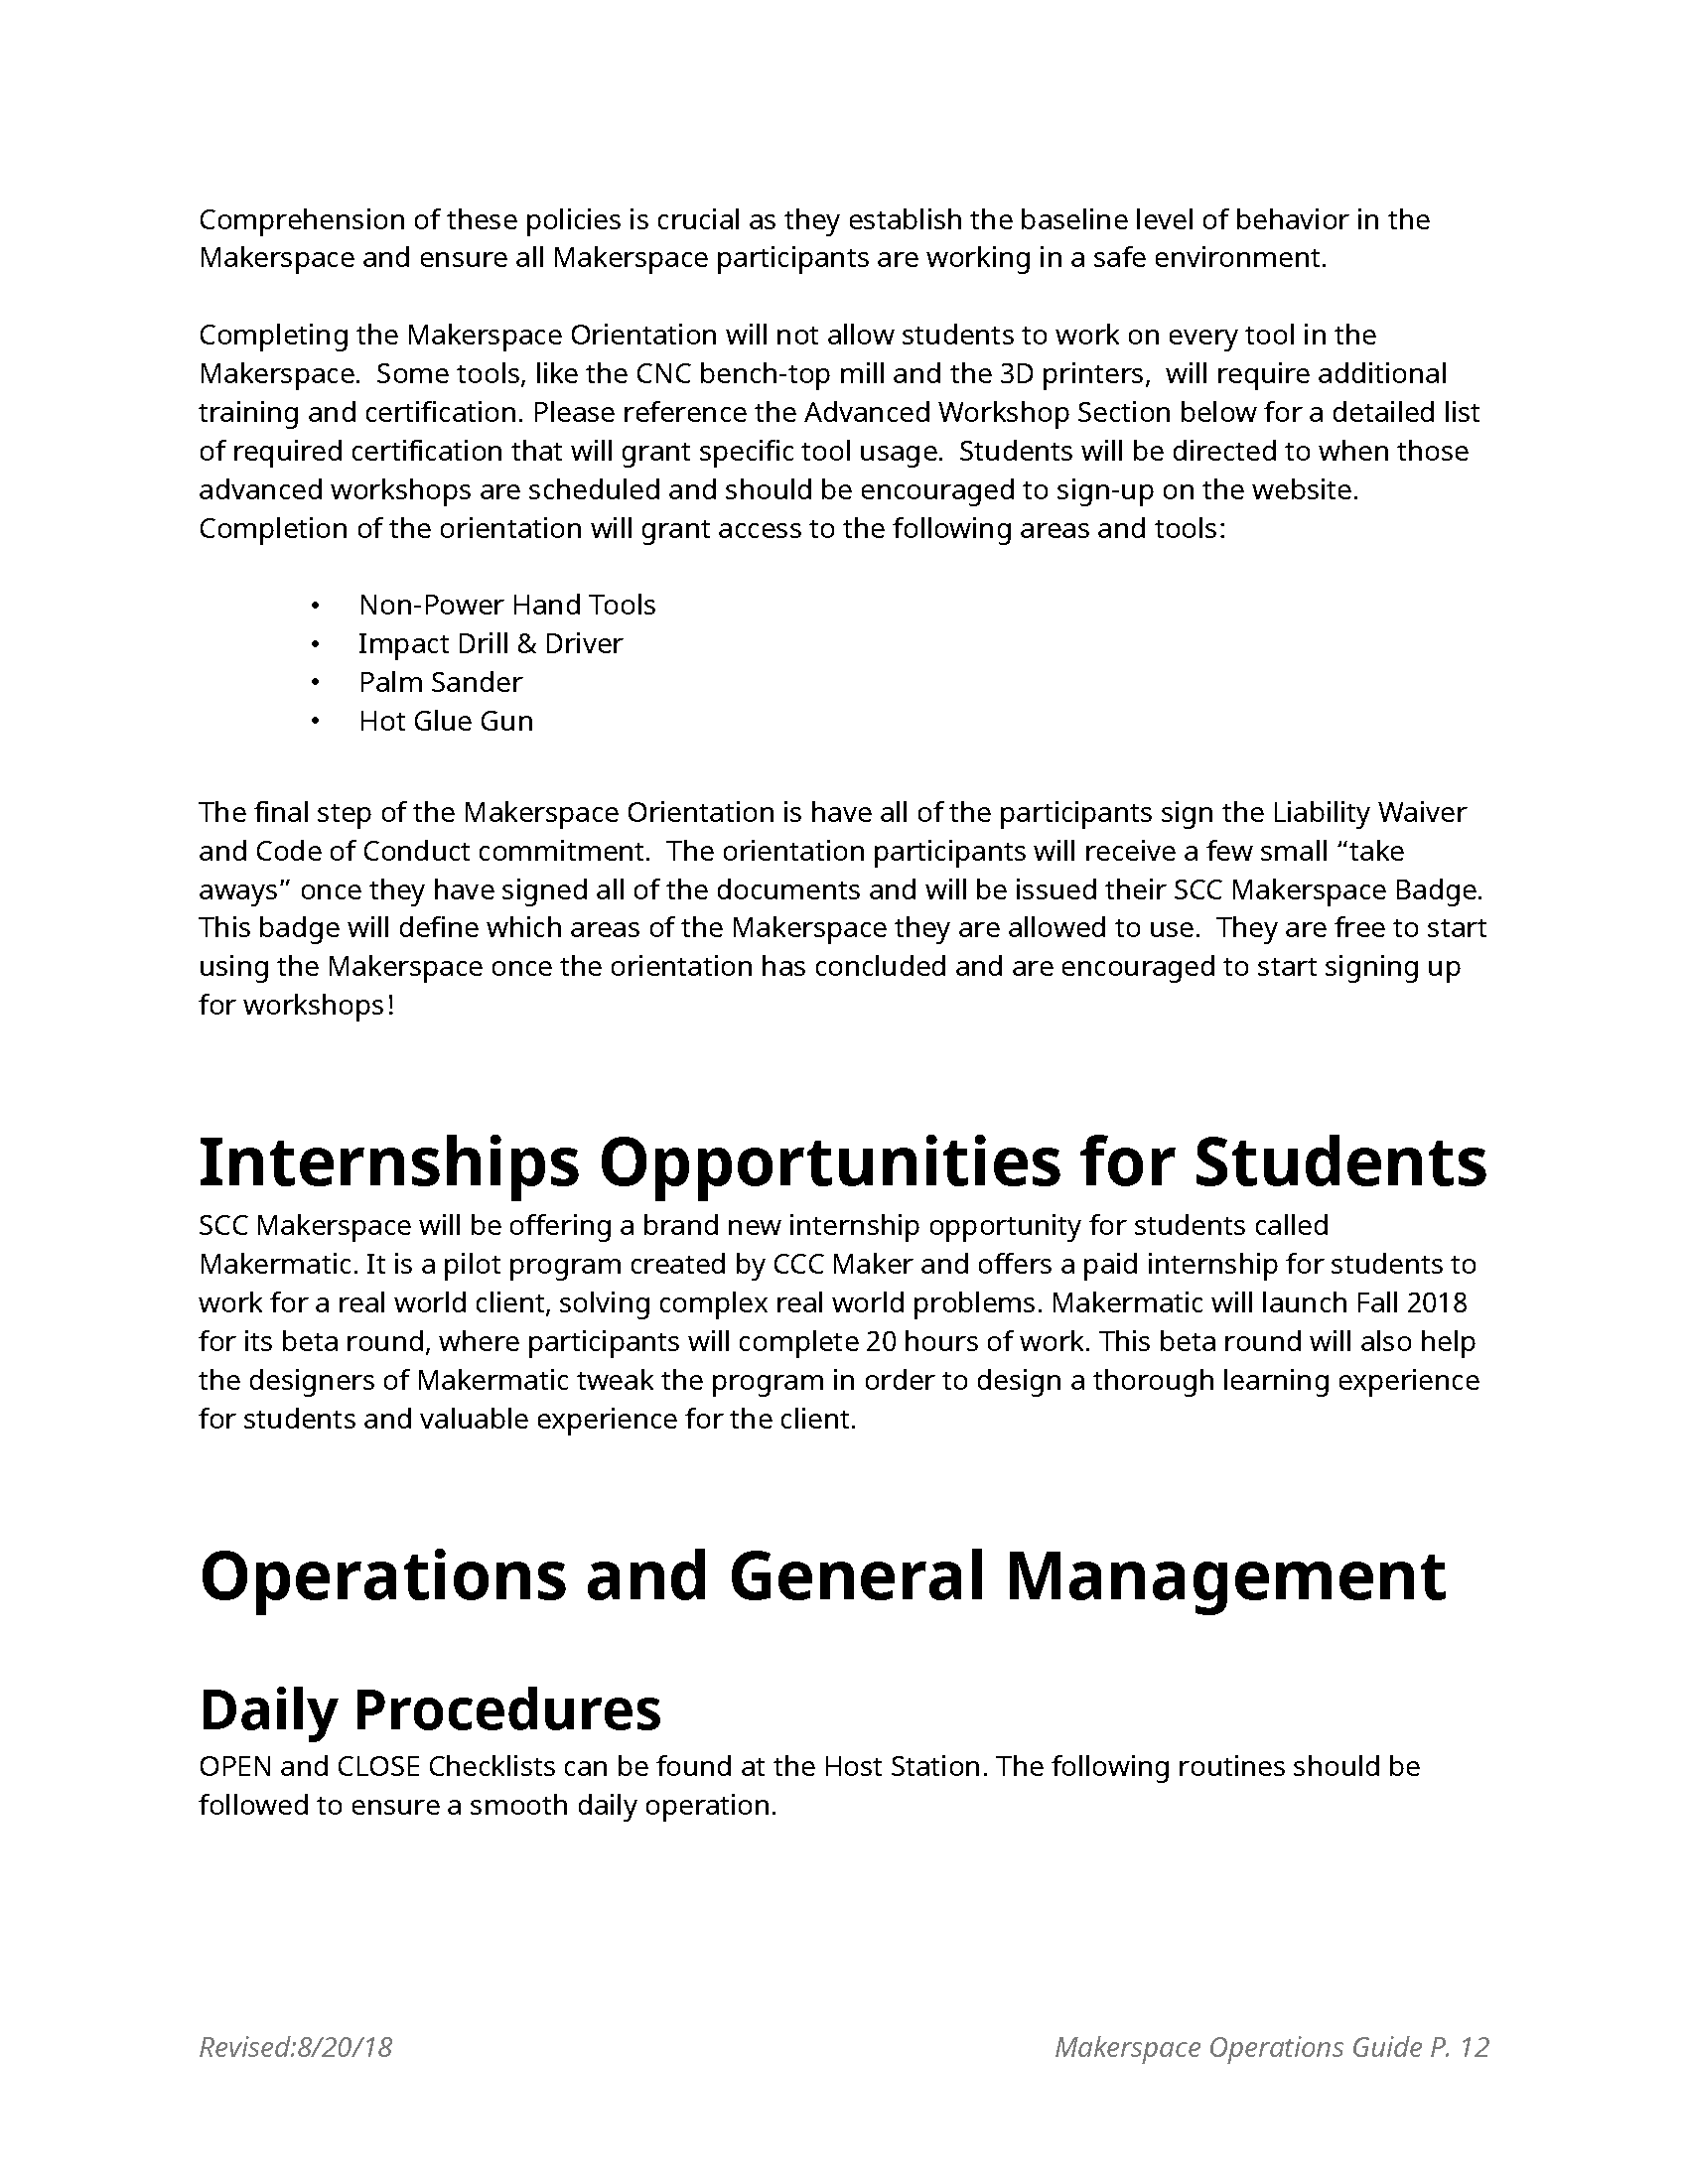 ms_ops_manual_8-20_Page_12.png